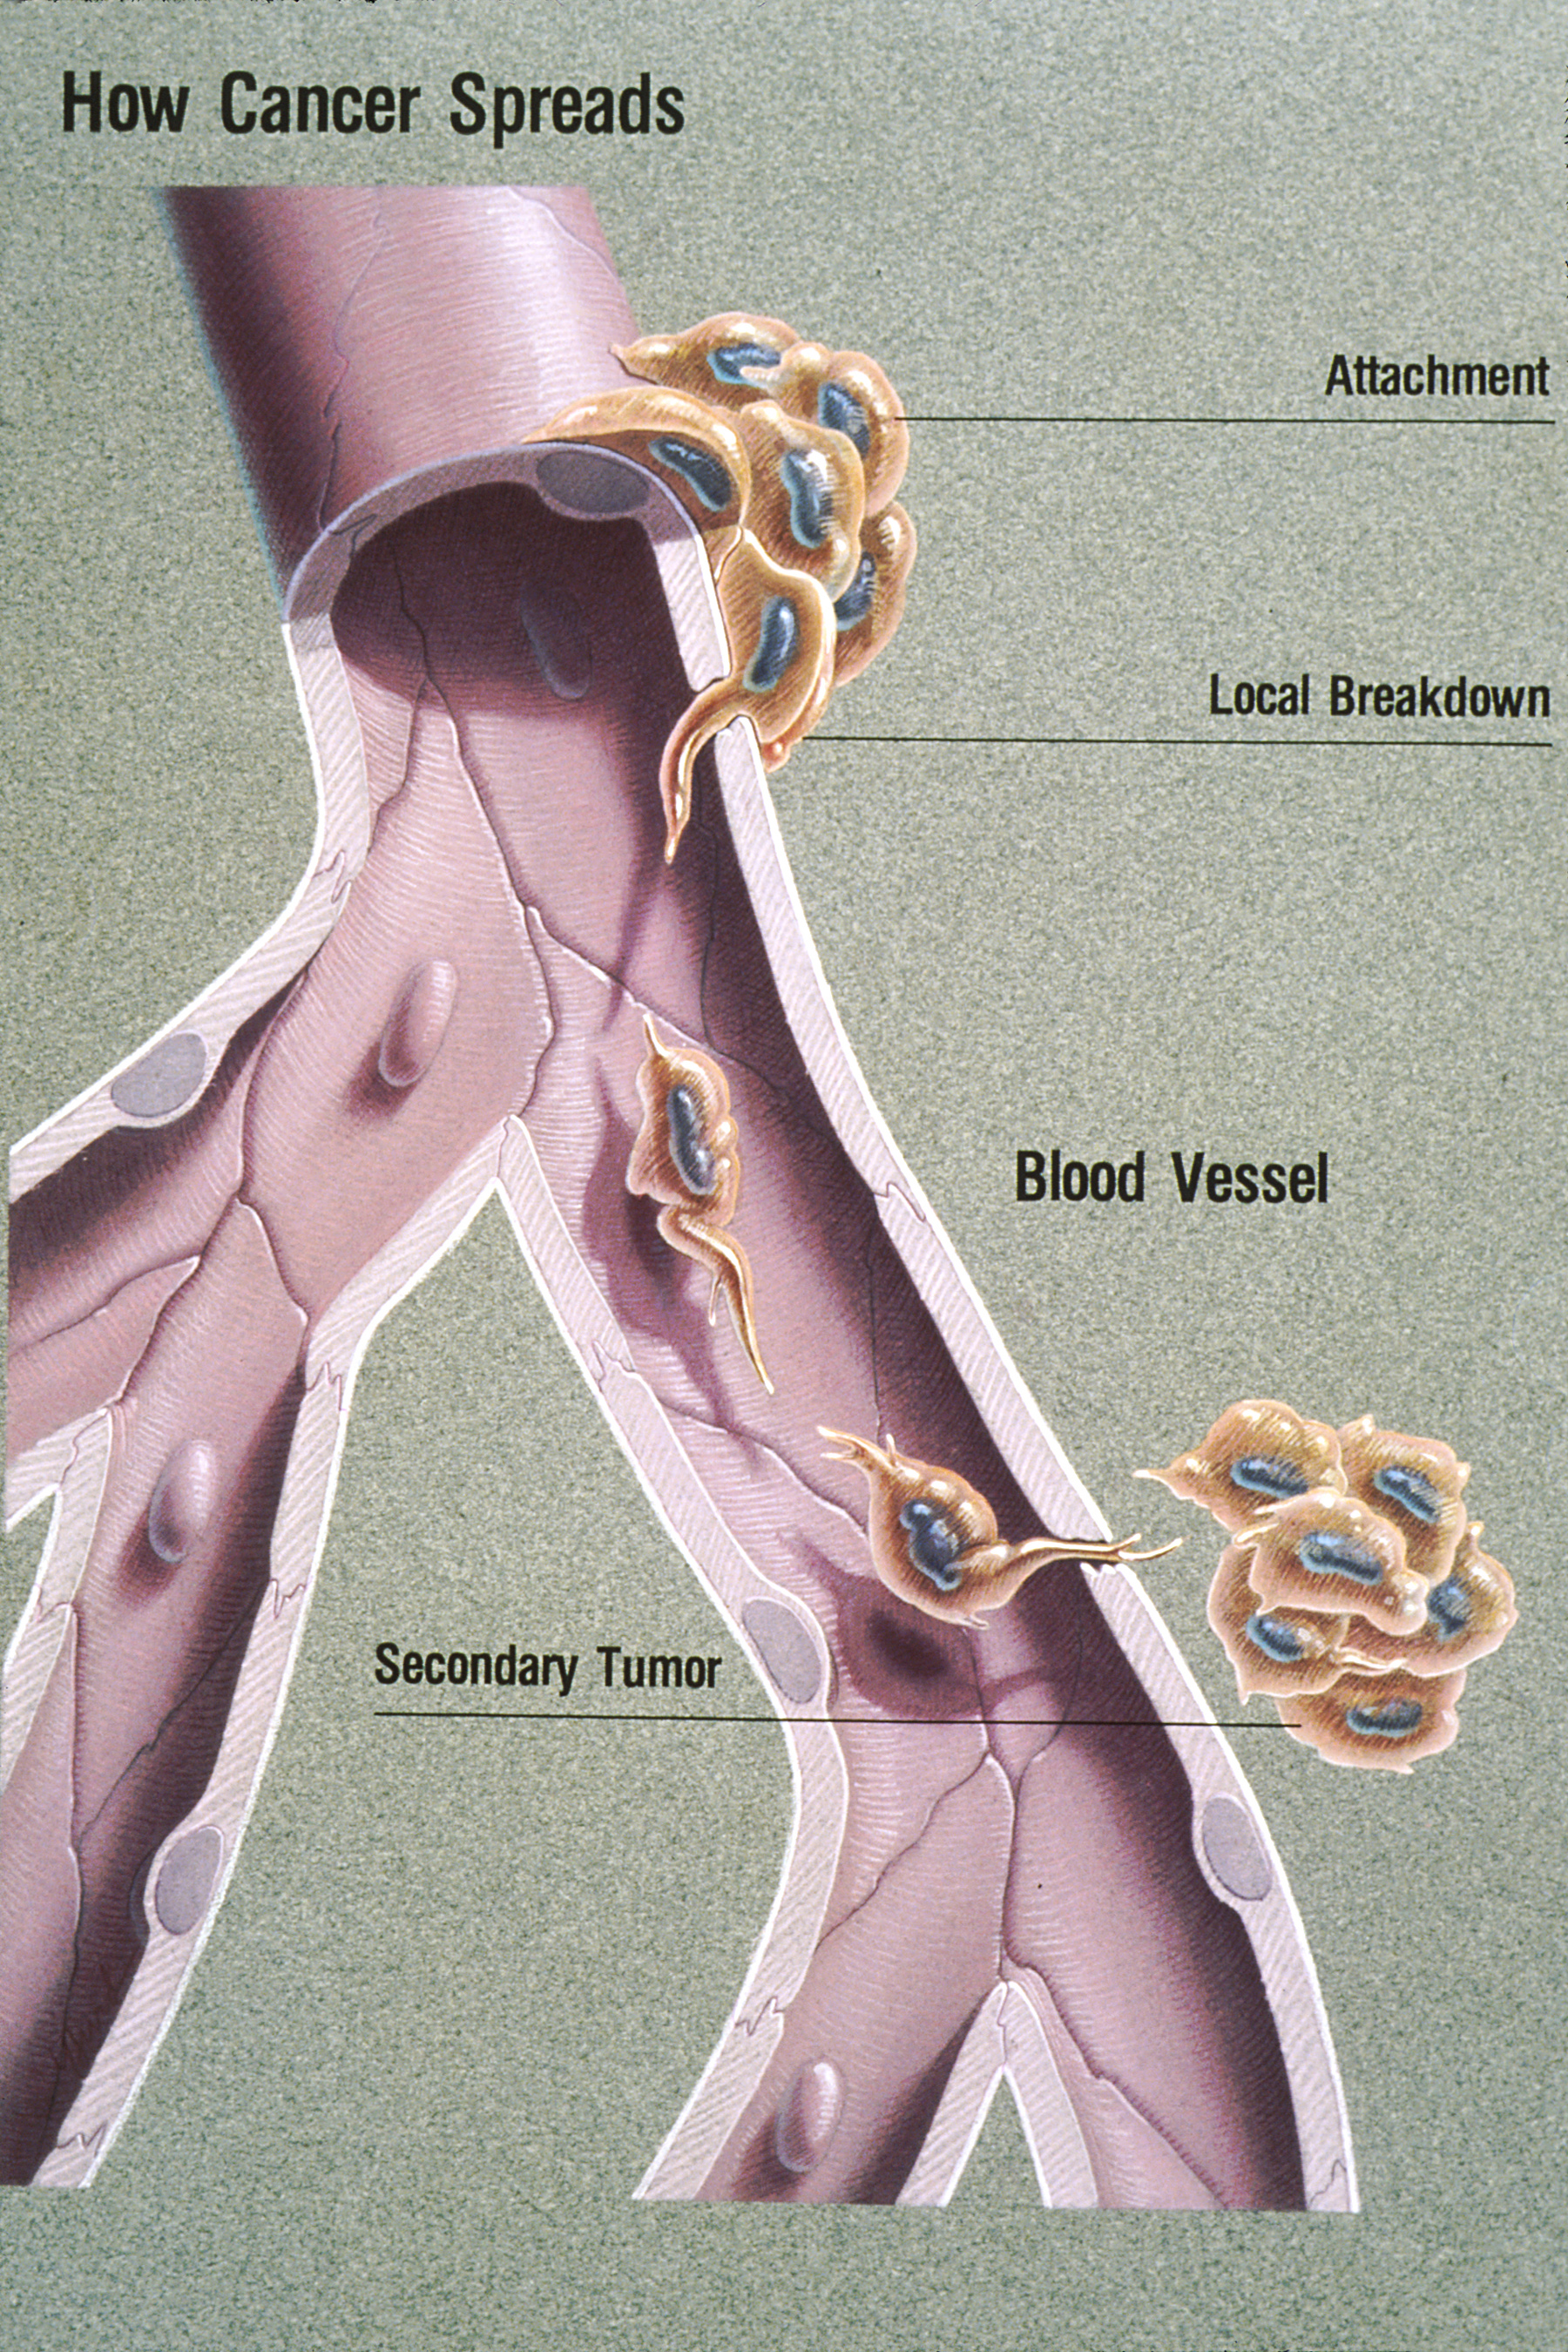 metastatic cancer no symptoms)